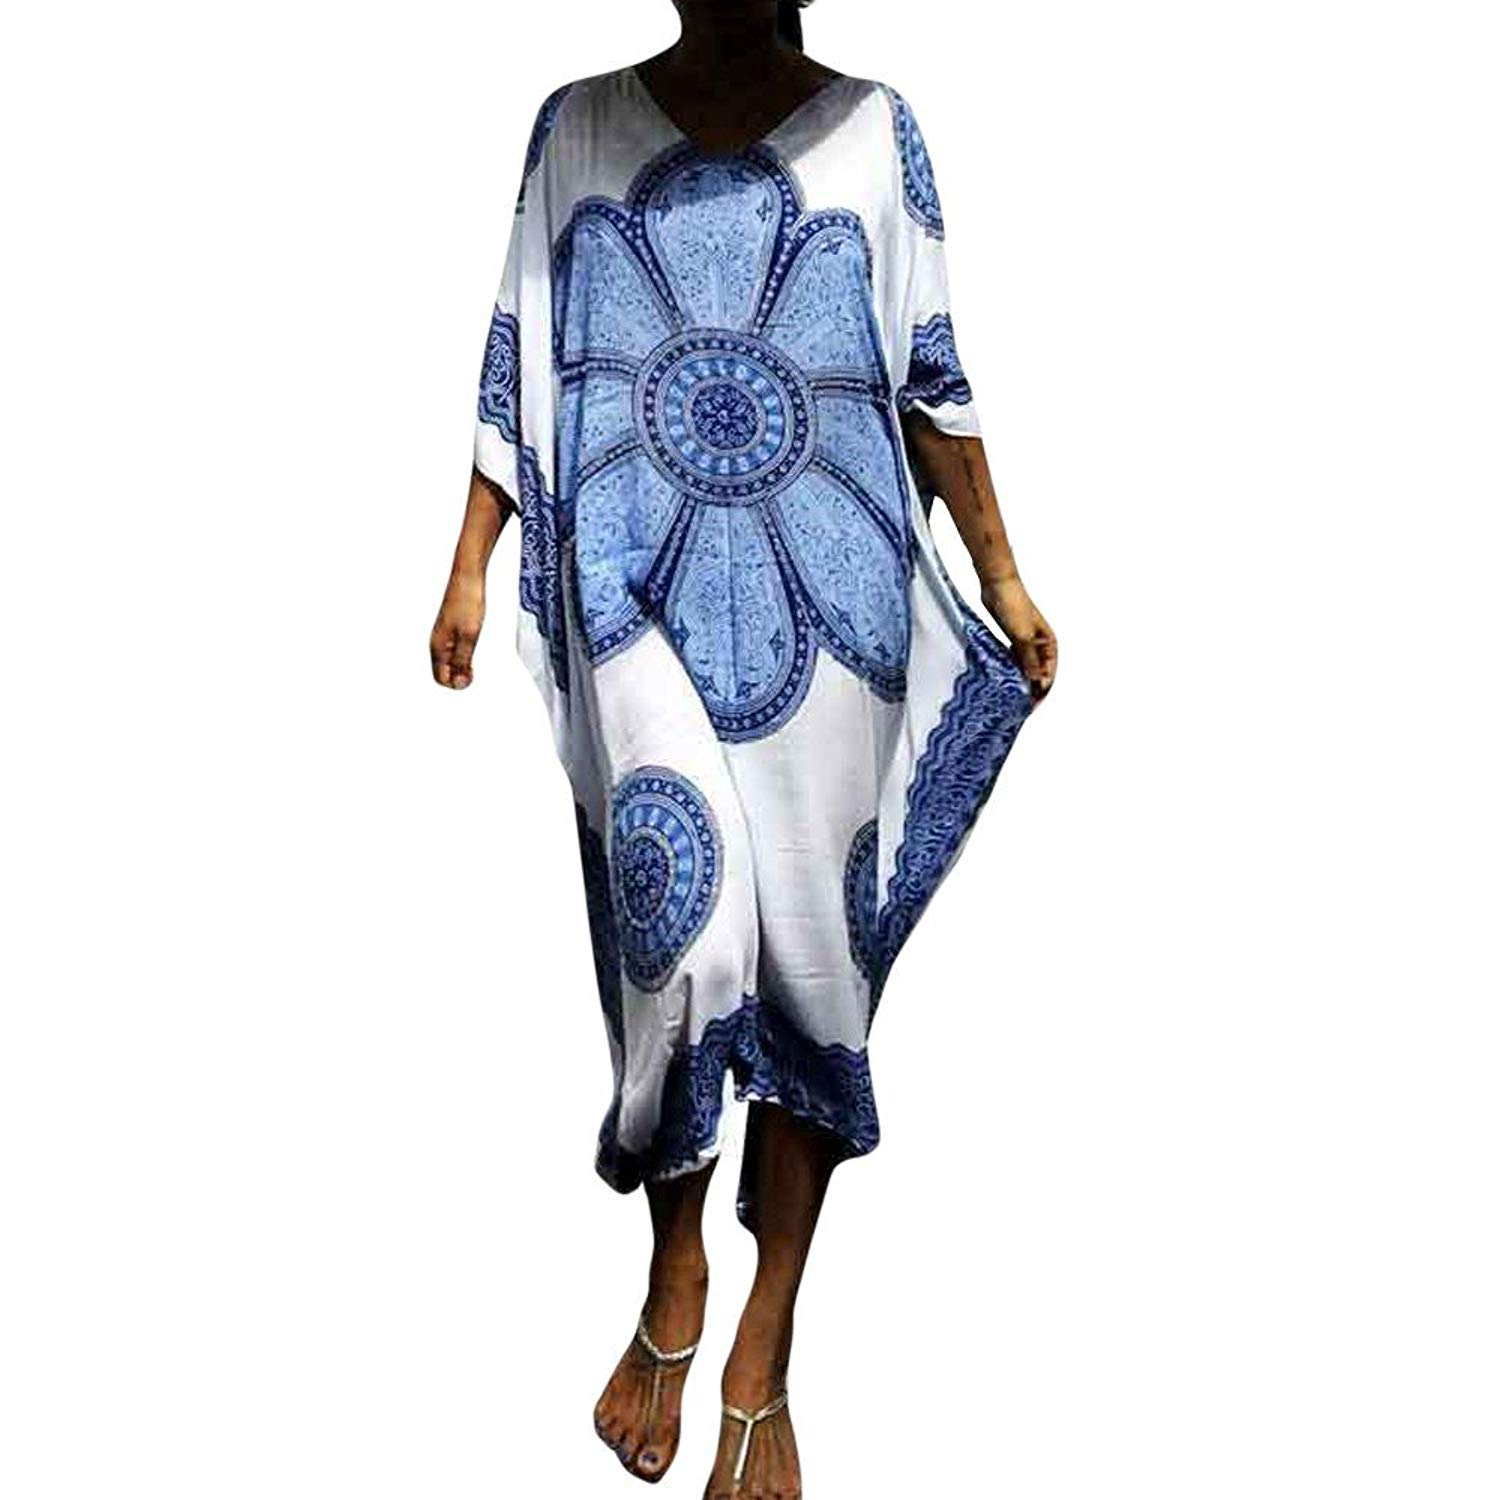 Swimming Beach Tunic And Dress Swim Suit Cover Up Swimsuits Wear Womens Swimsuit Female Cotton Printed Skirt Sexy Acetate Print Cover-ups